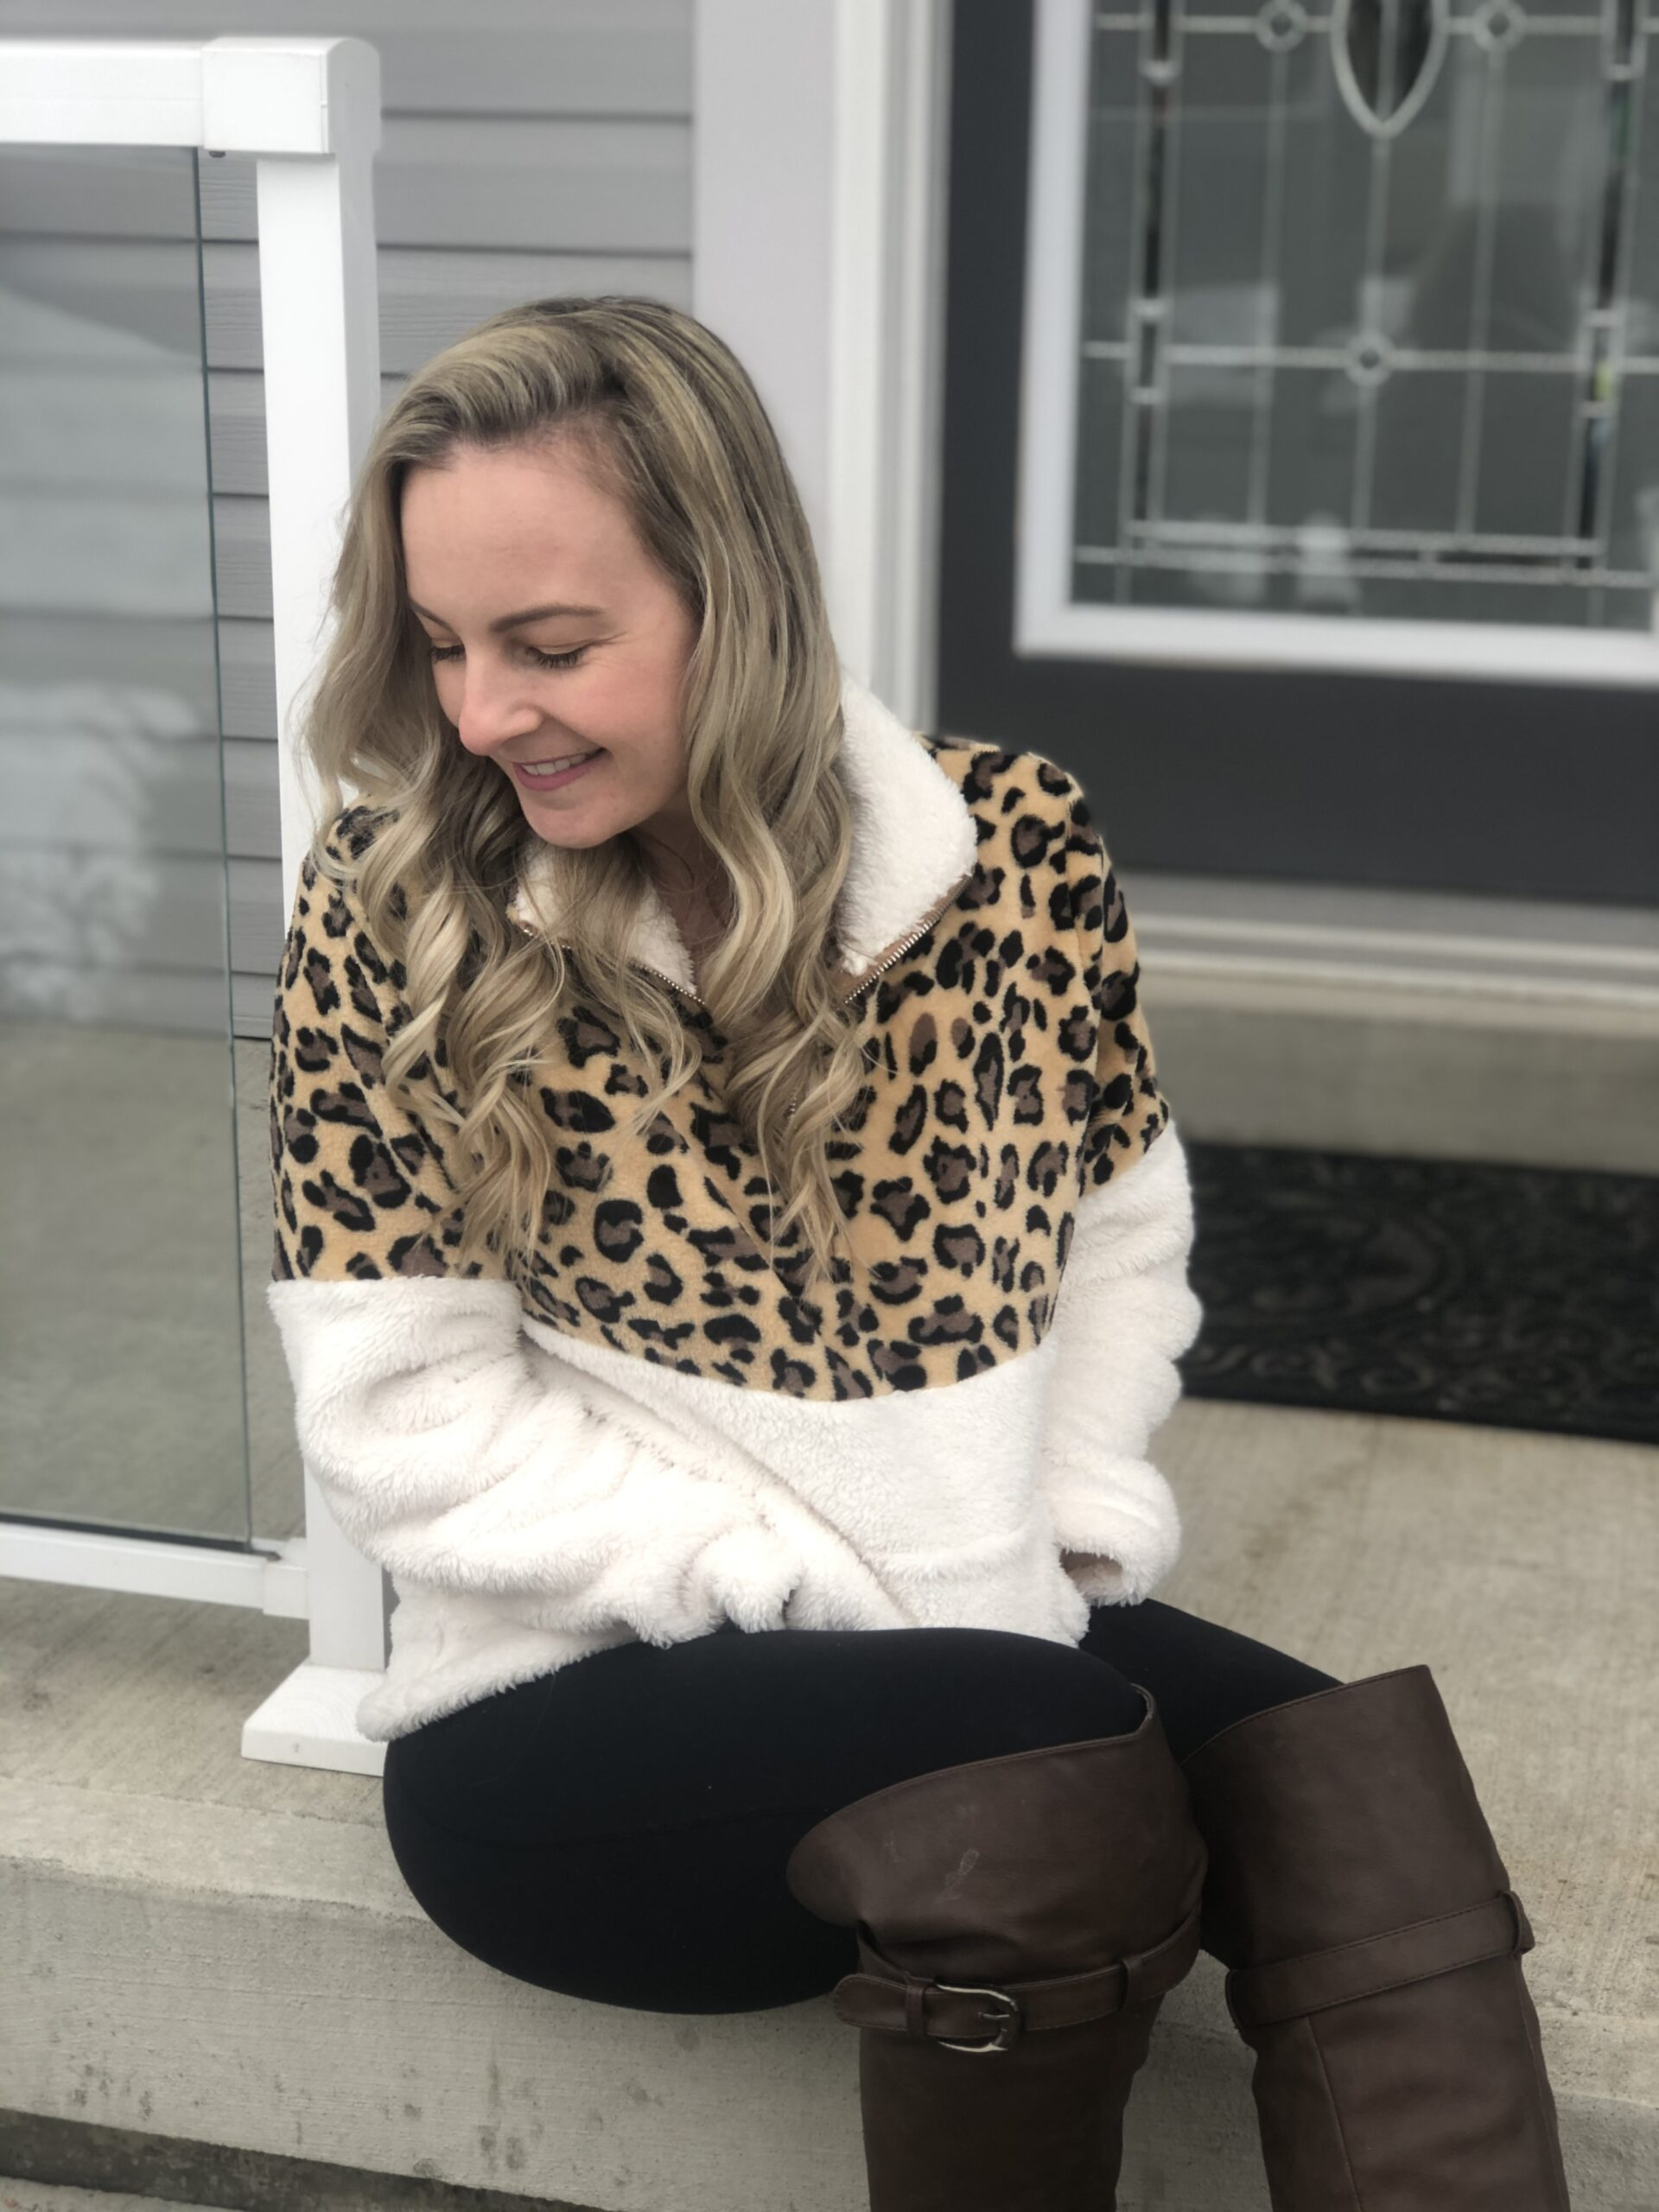 Fleece Leopard Sweater from Shein on Livin' Life with Style